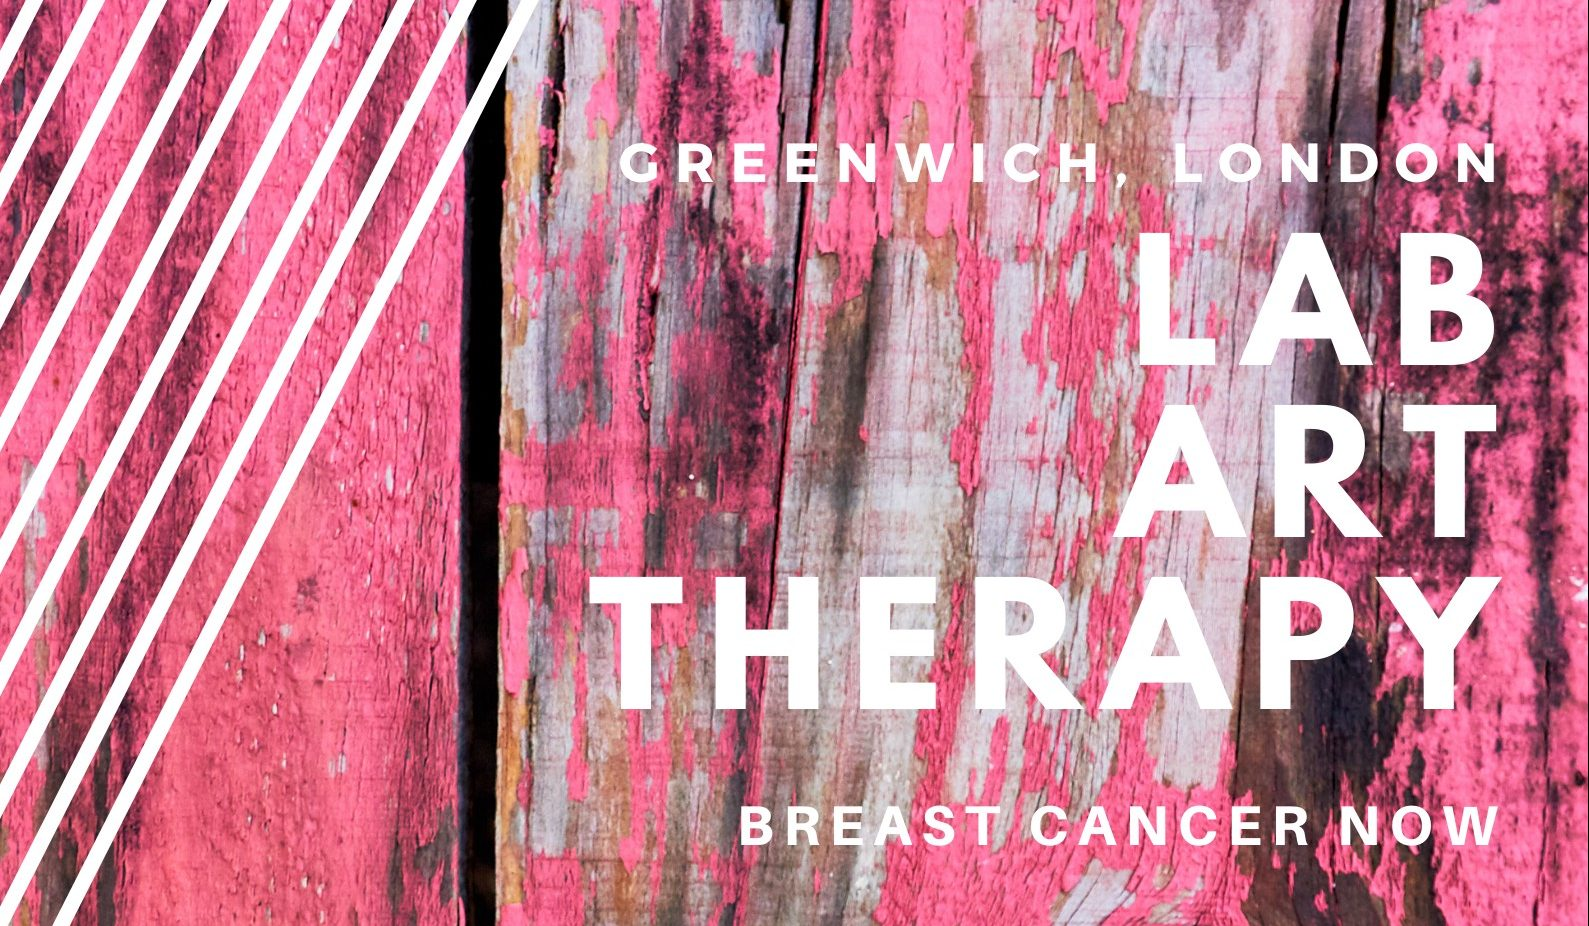 LAB Art Therapy Breast Cancer Event at Greenwich